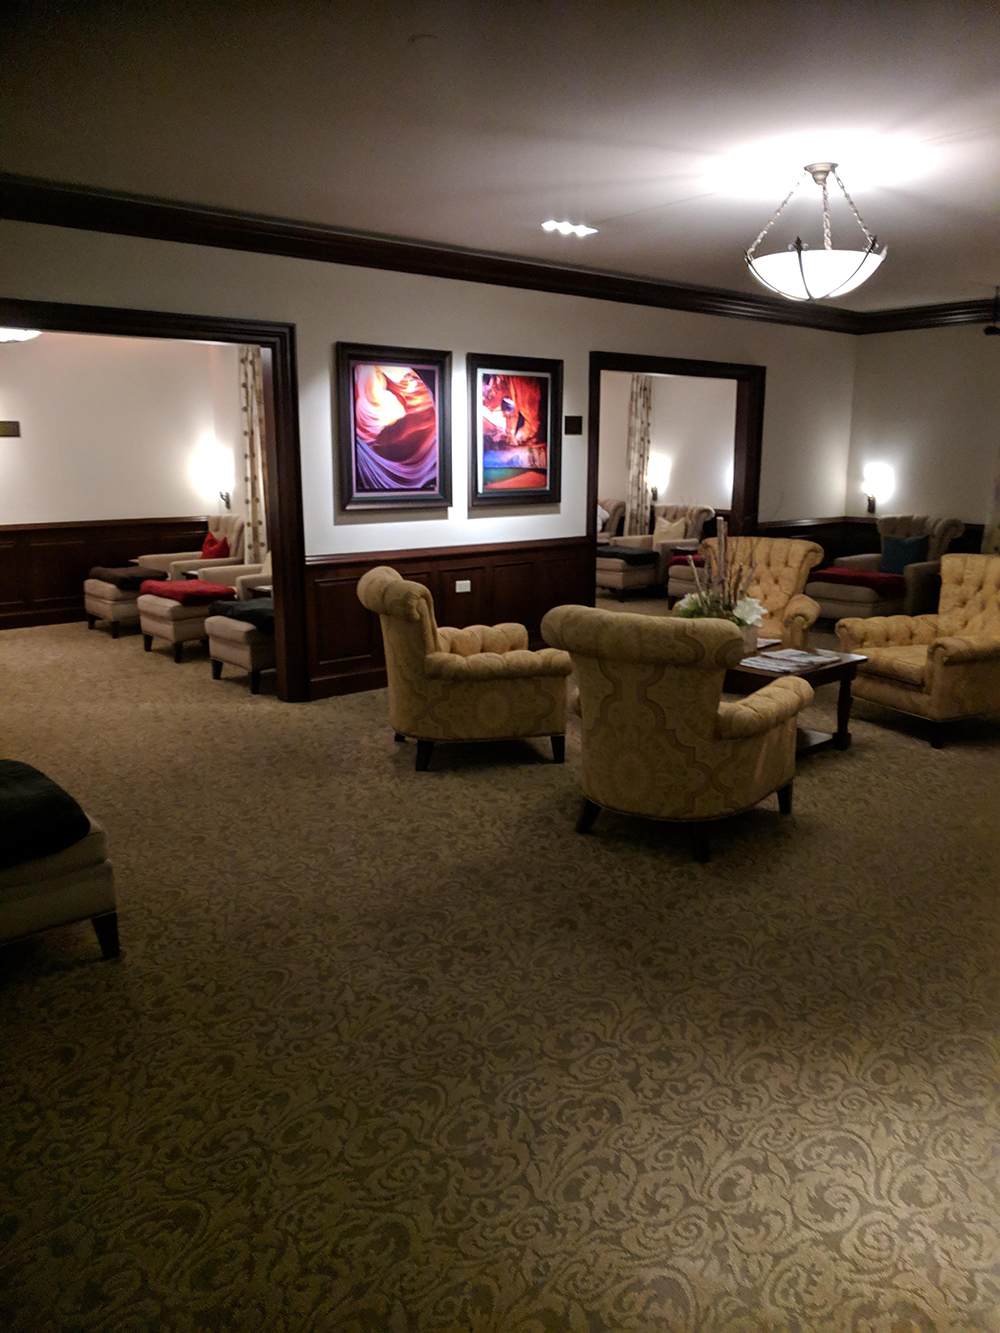 Another view of the relaxation lounge. Not pictured: a crackling fire.